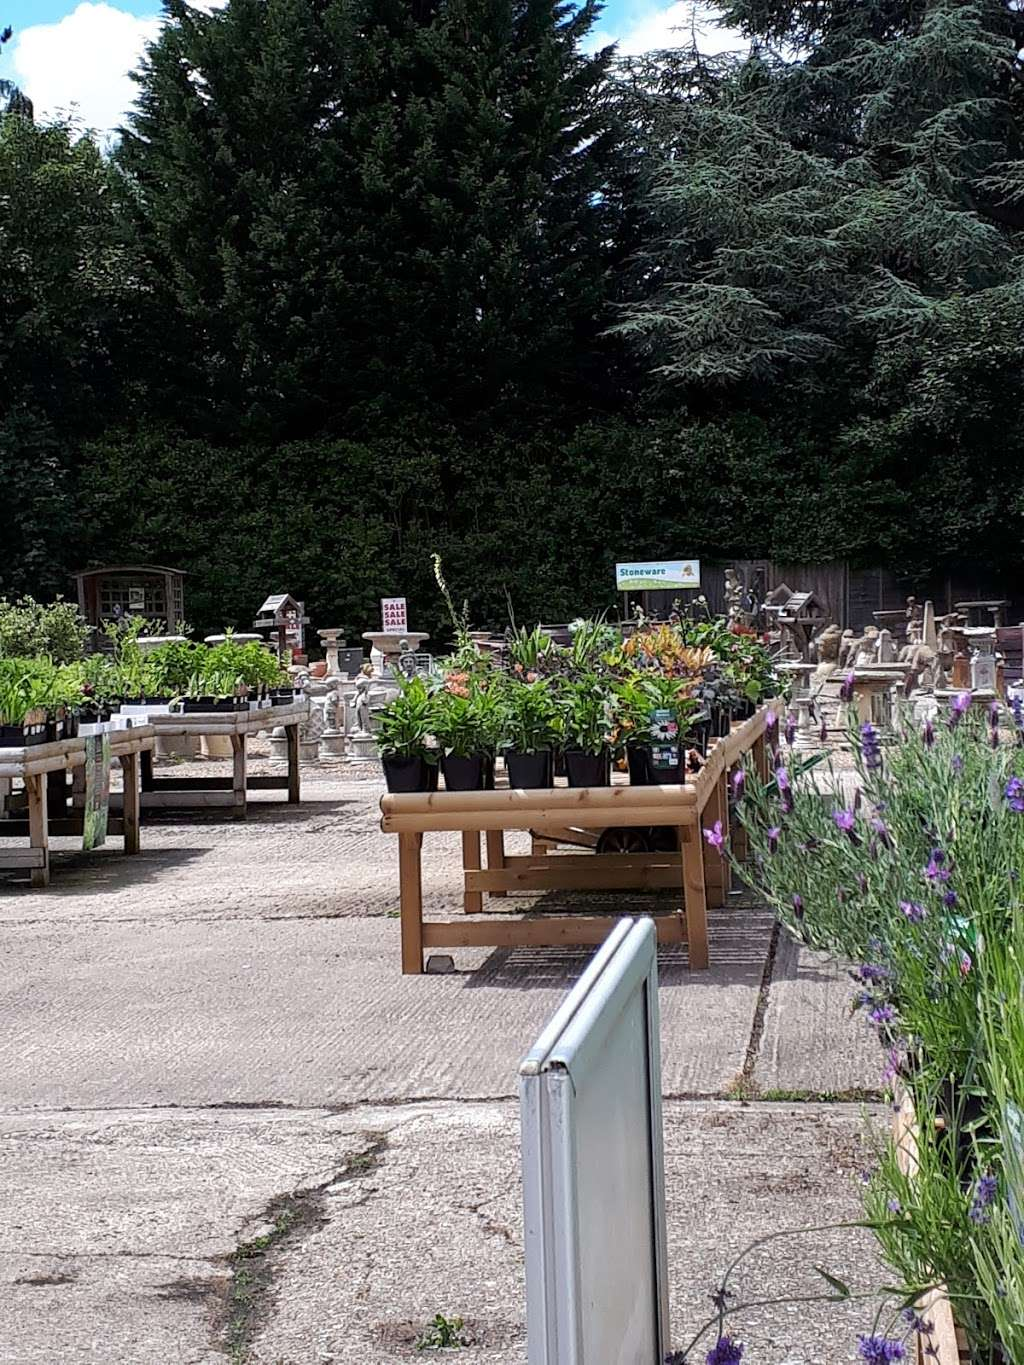 Buckland Nurseries Garden Centre - store  | Photo 8 of 10 | Address: Reigate Rd, Reigate, Betchworth RH2 9RE, UK | Phone: 01737 242990